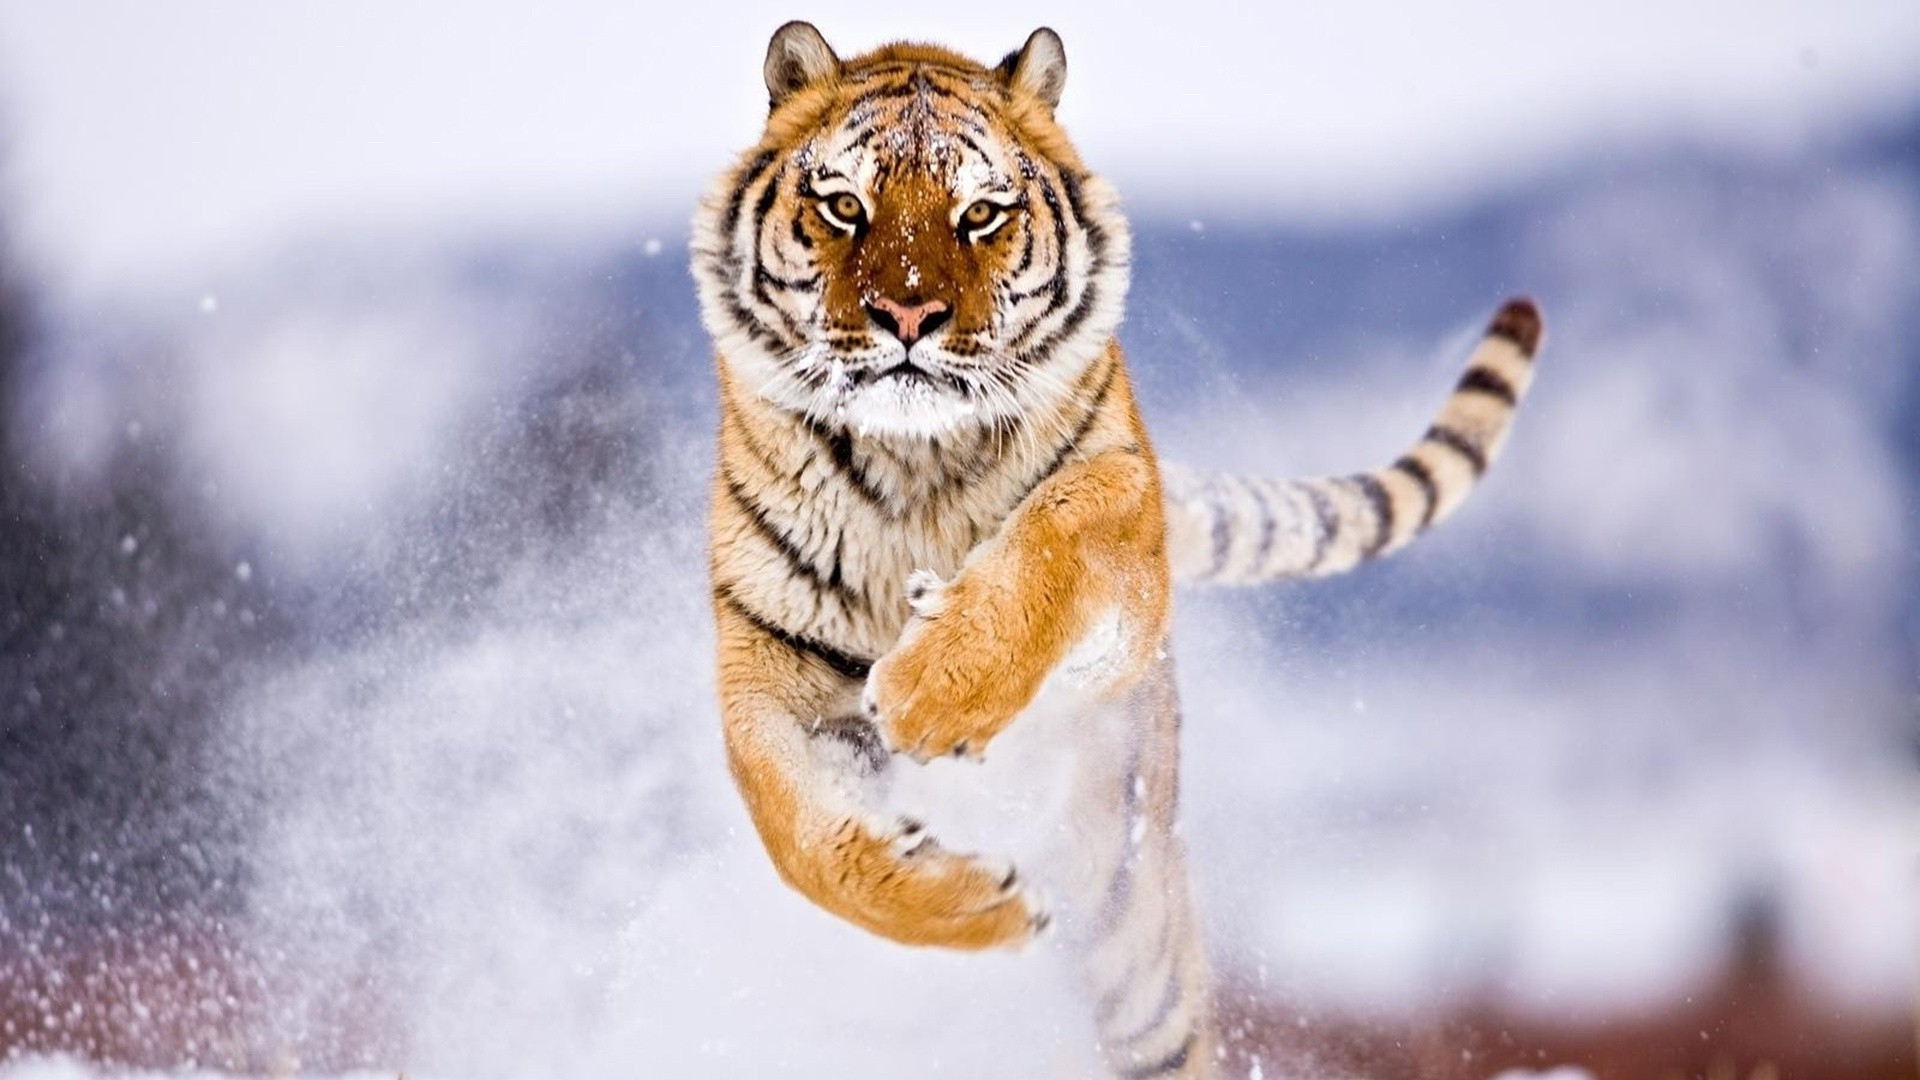 Cute Bengal Wallpapers Hd 1366x768 Tiger Snow Attack Animals Wallpapers Hd Desktop And